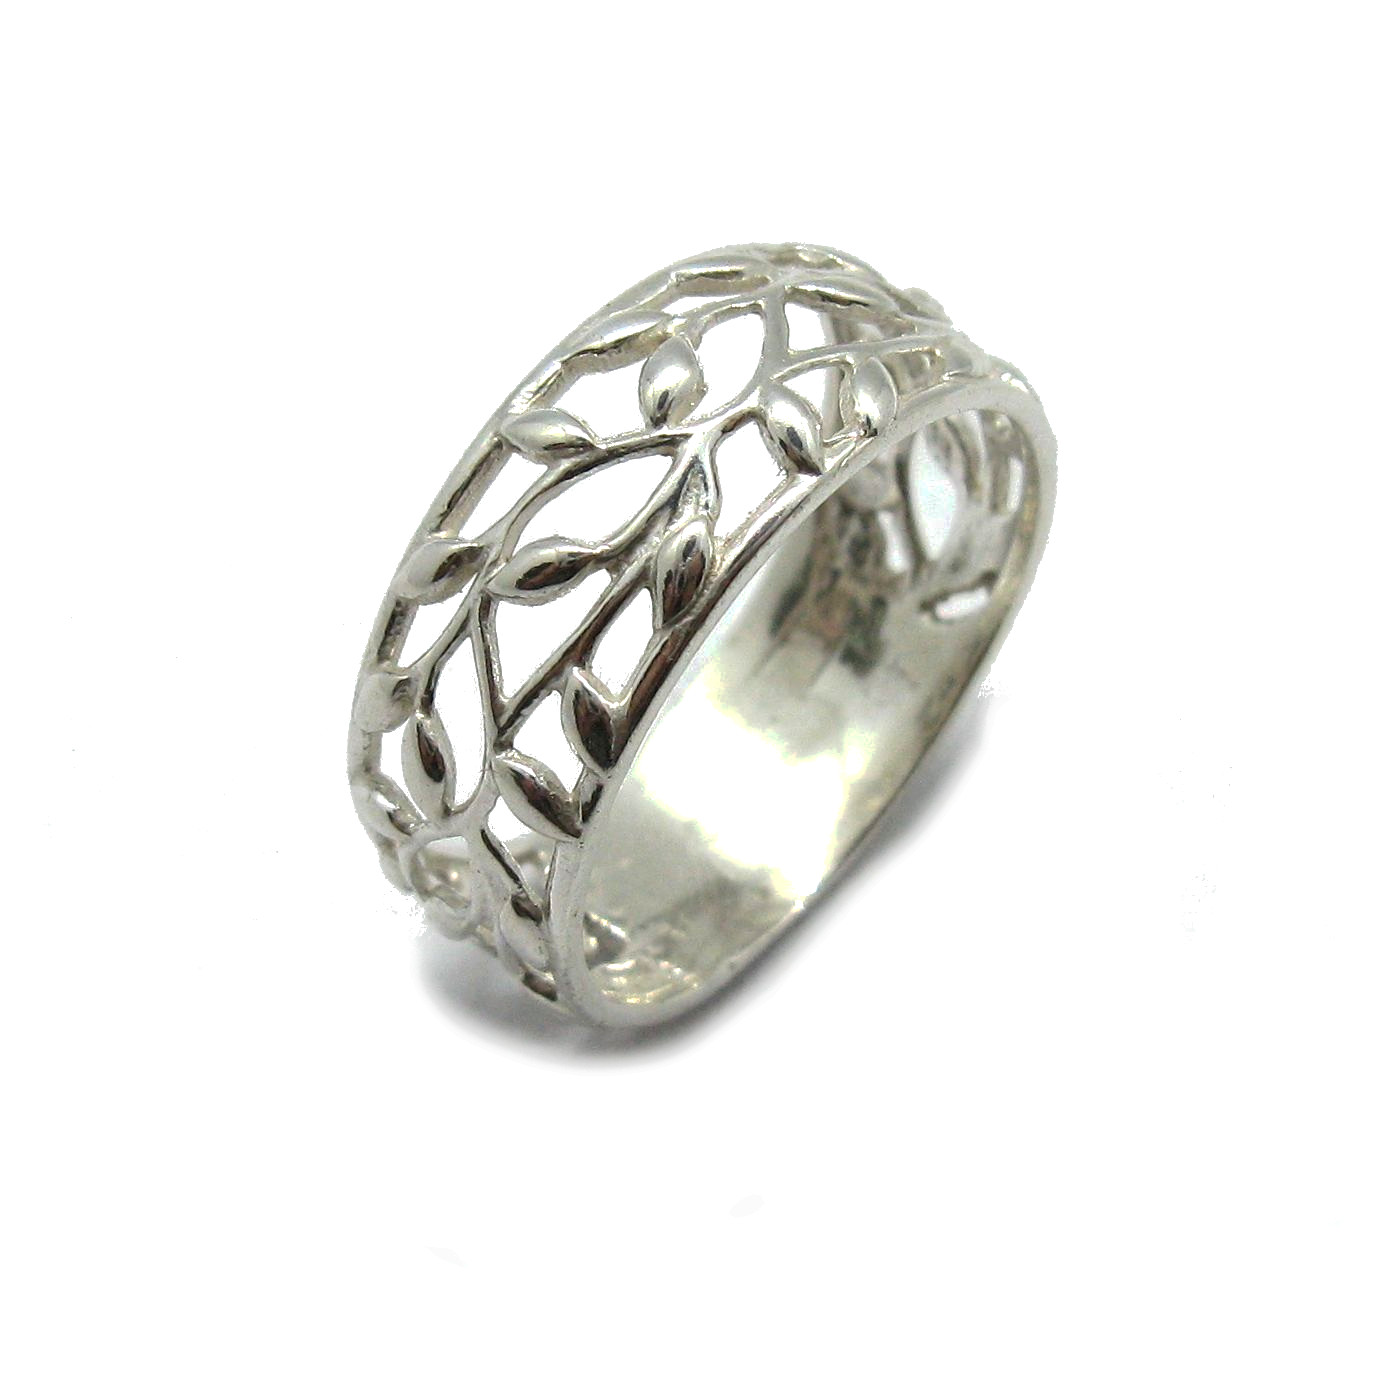 Silver ring - R001821